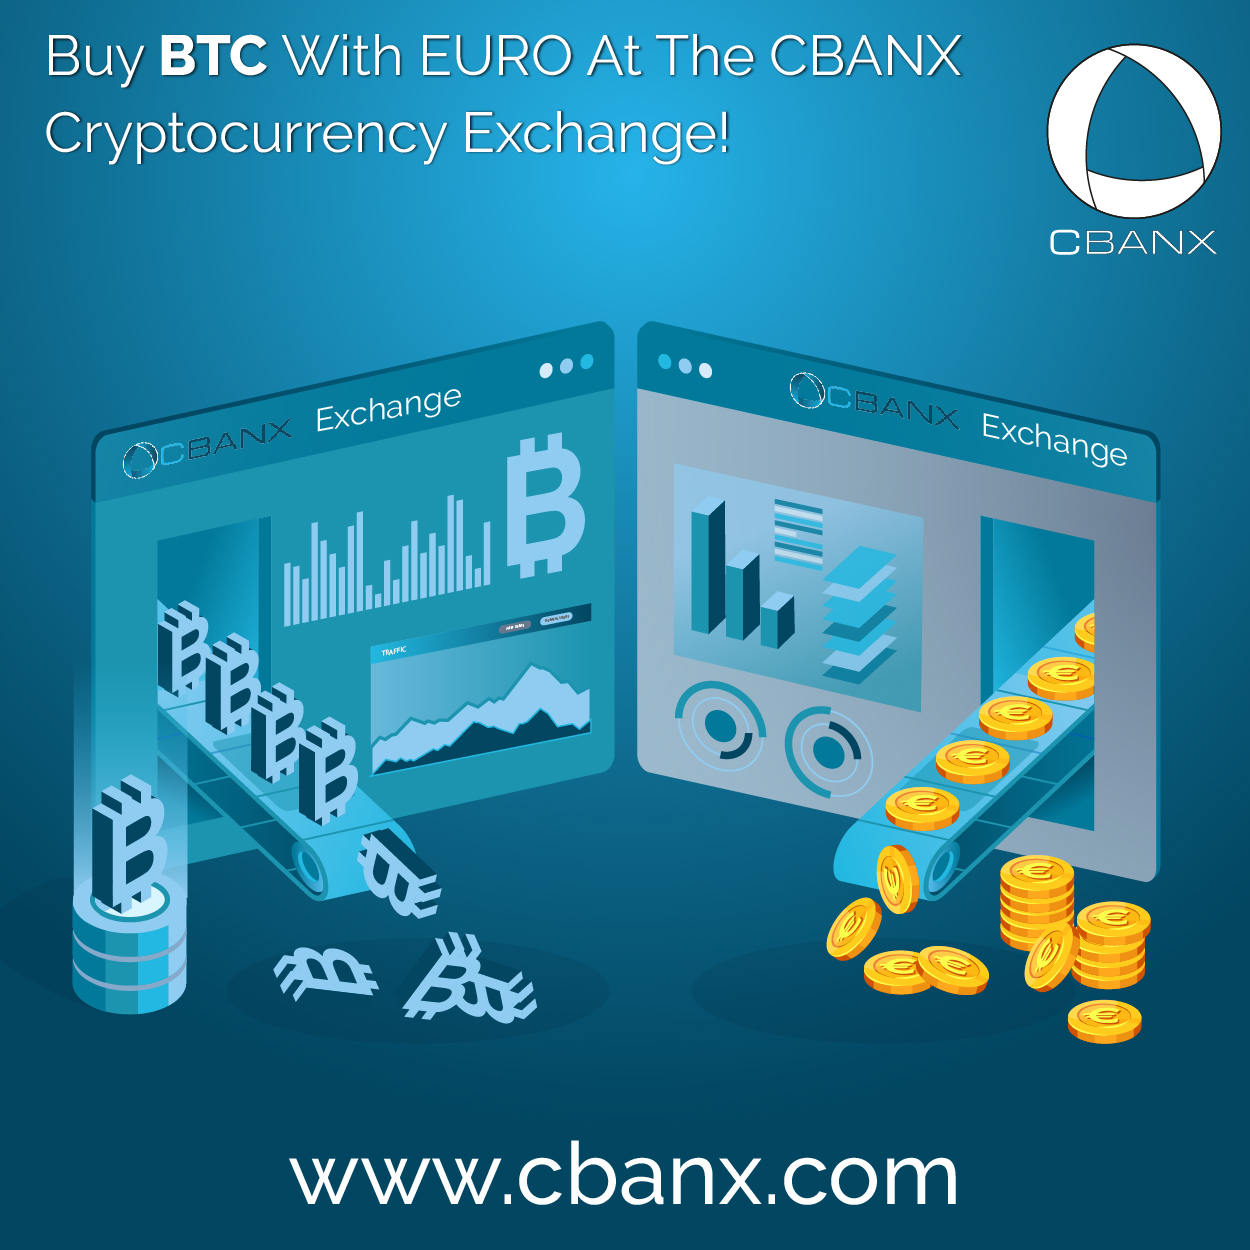 Buy BTC With EURO At The CBANX Cryptocurrency Exchange!